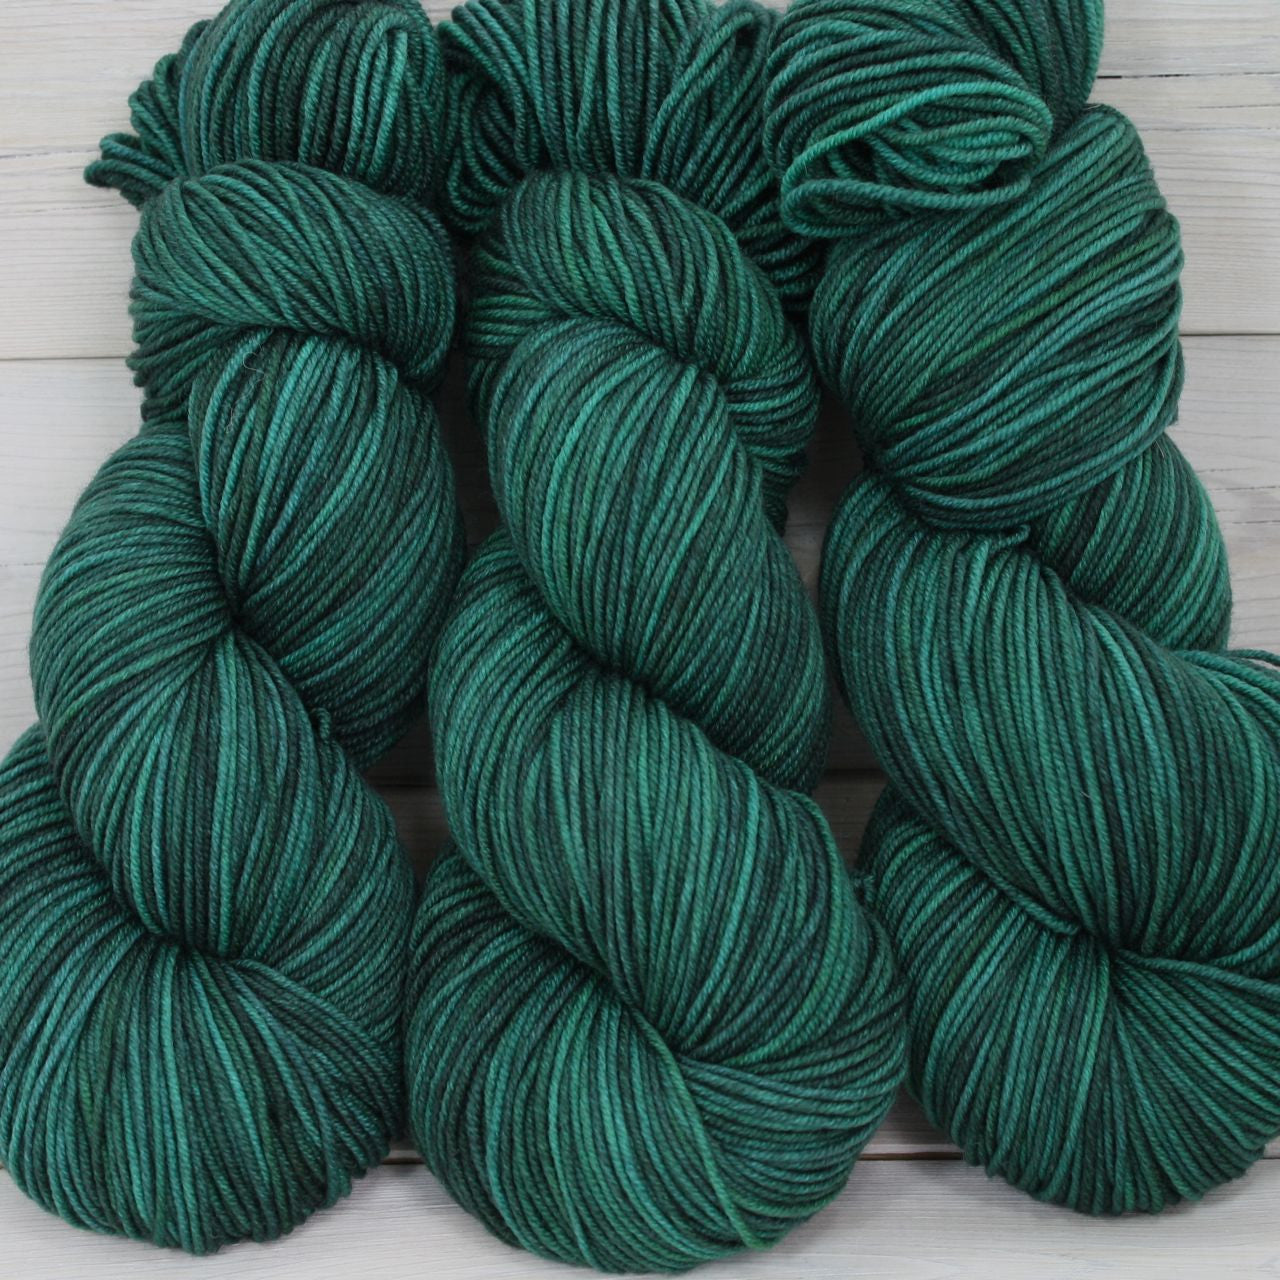 Aspen Sport Yarn | Colorway: Dark Emerald